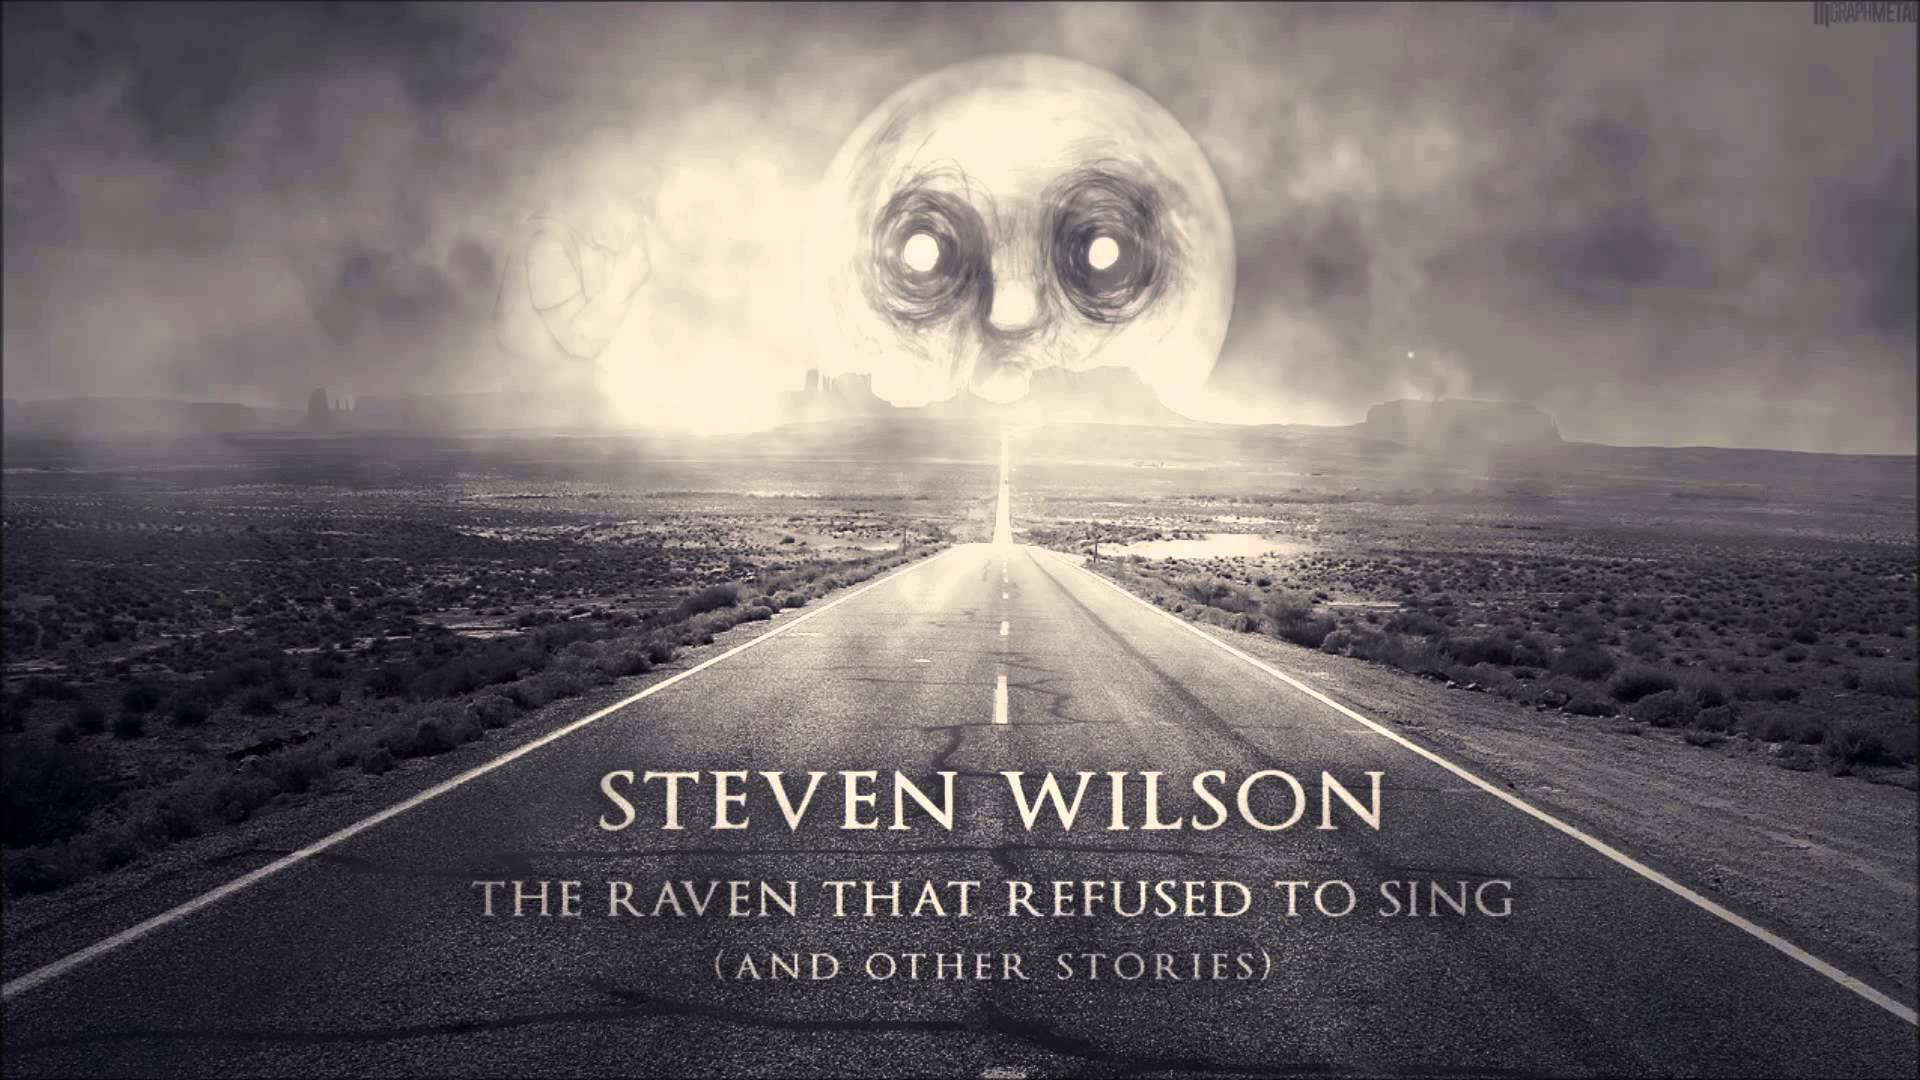 The Raven That Refused To Sing   Steven Wilson 1920x1080